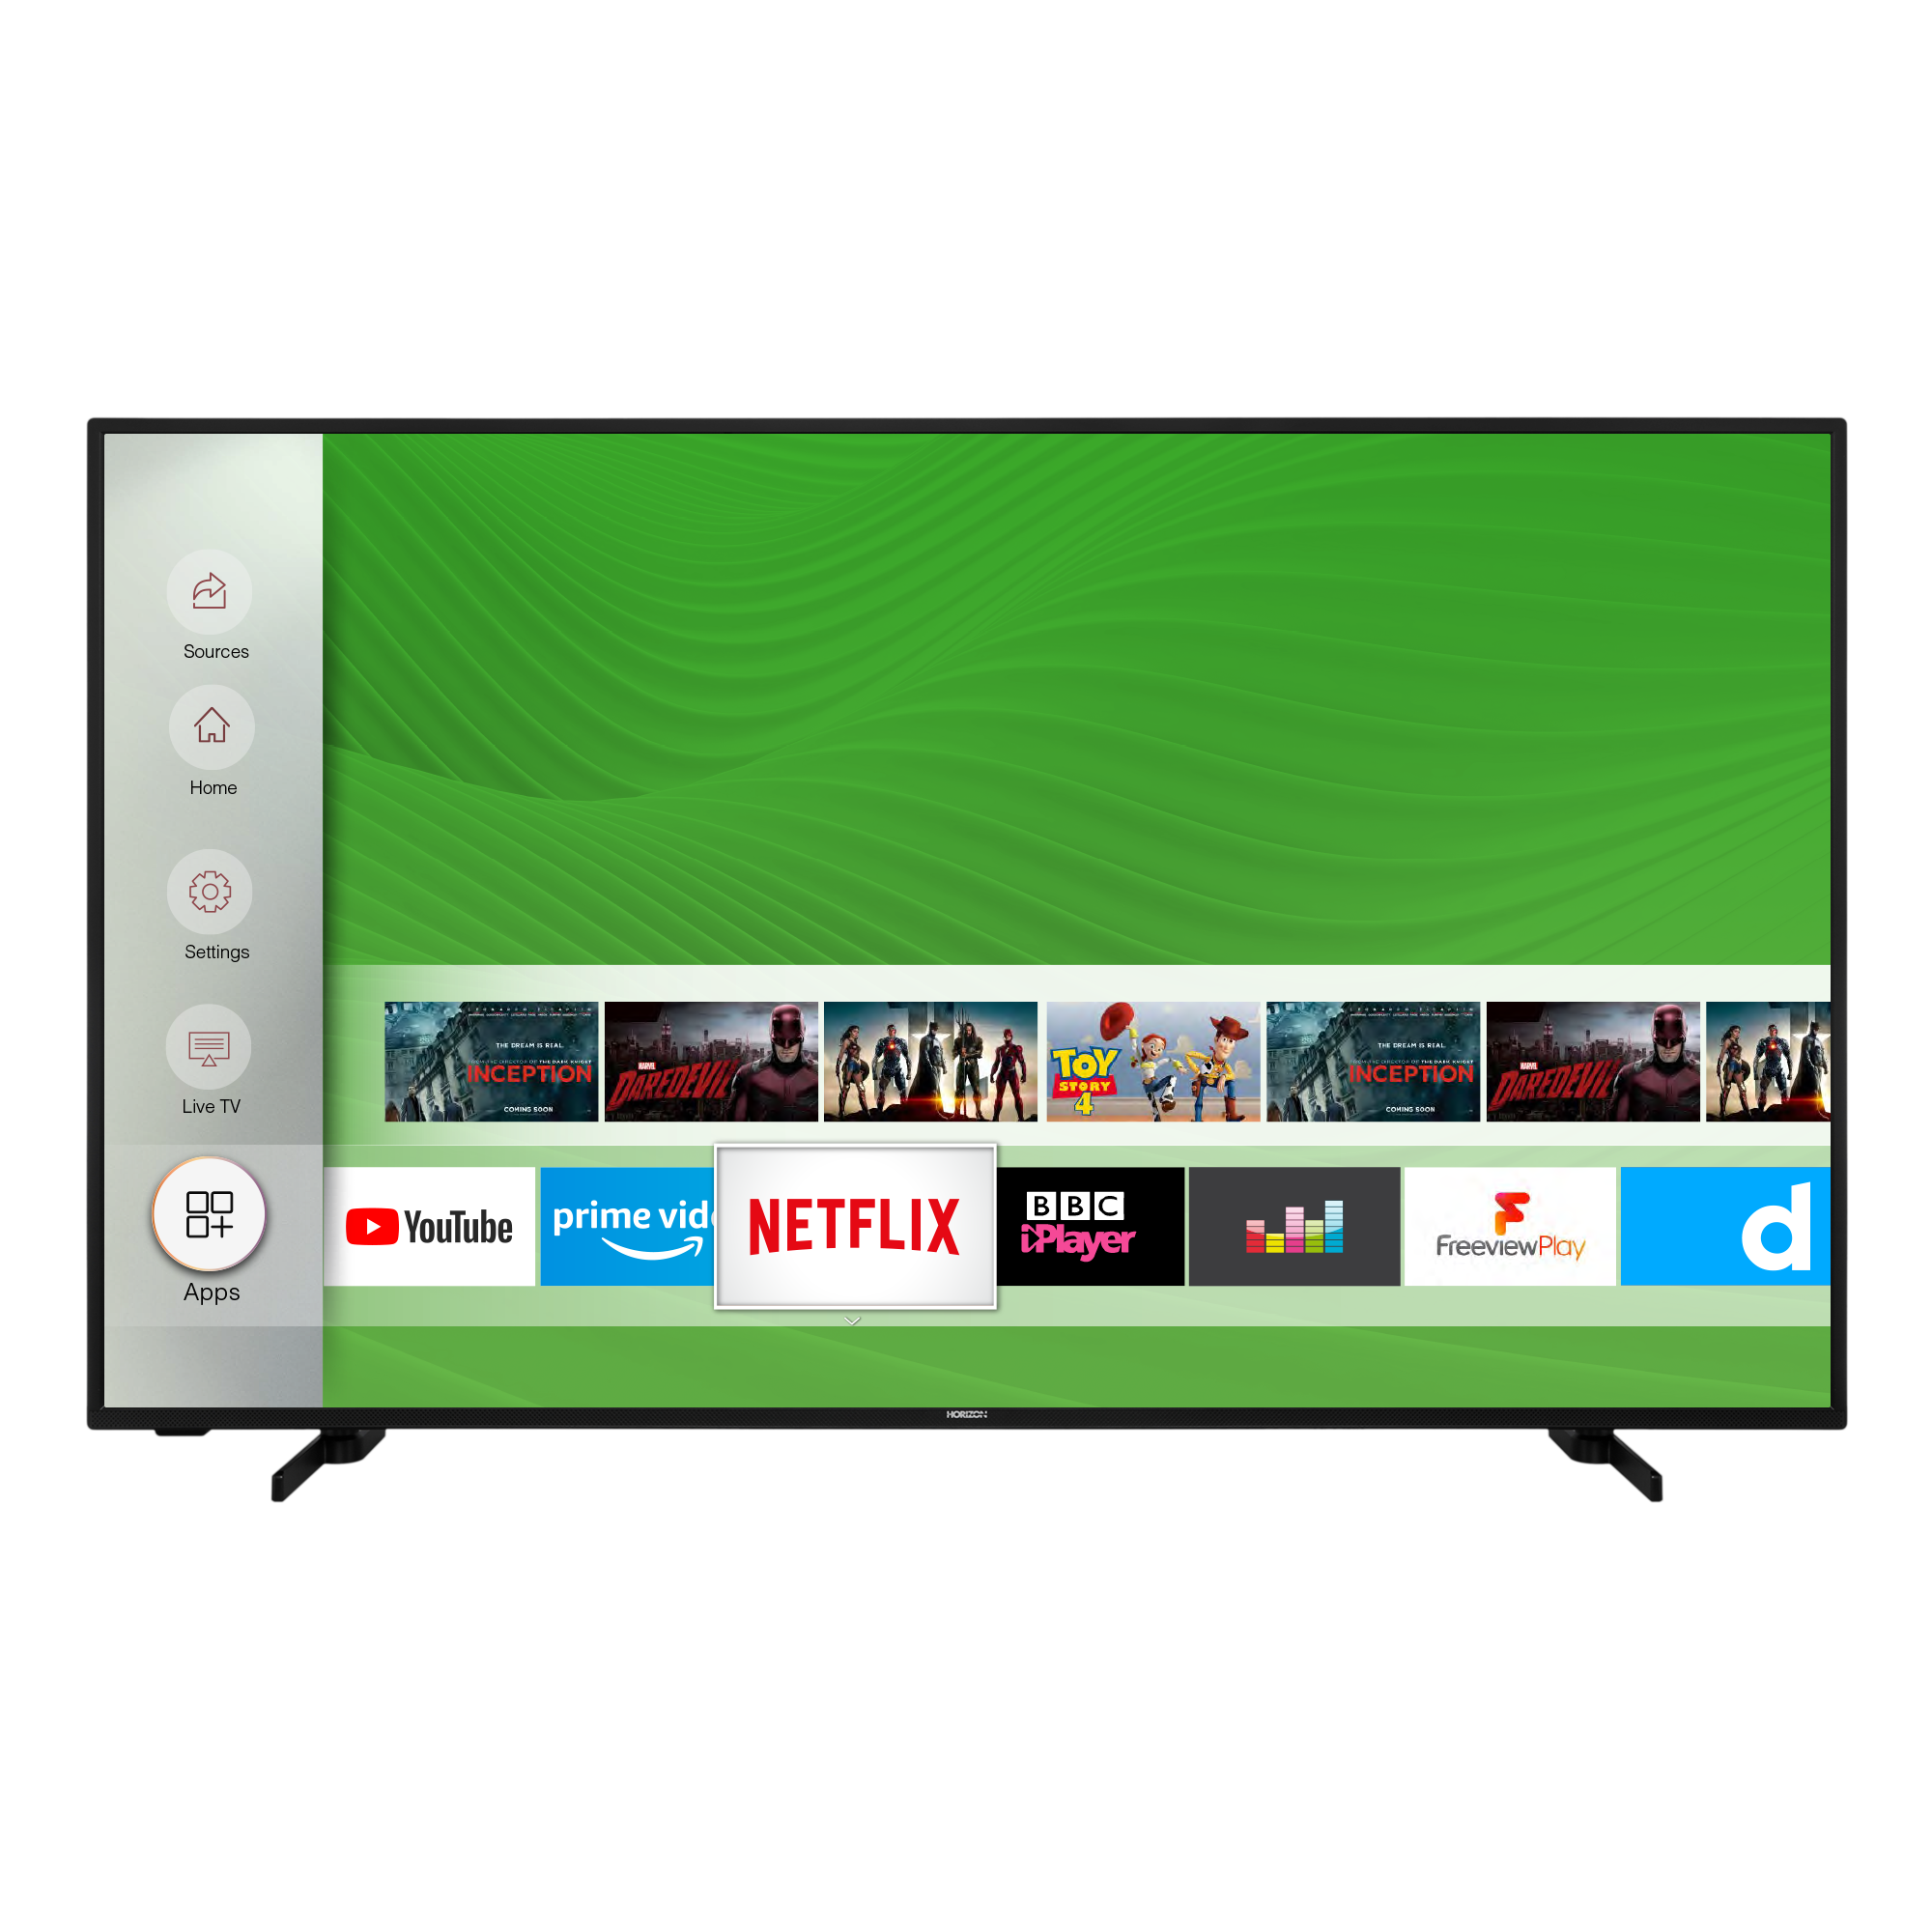 Televizor Horizon 55HL7530U, 139 cm, Smart, 4K Ultra HD, LED